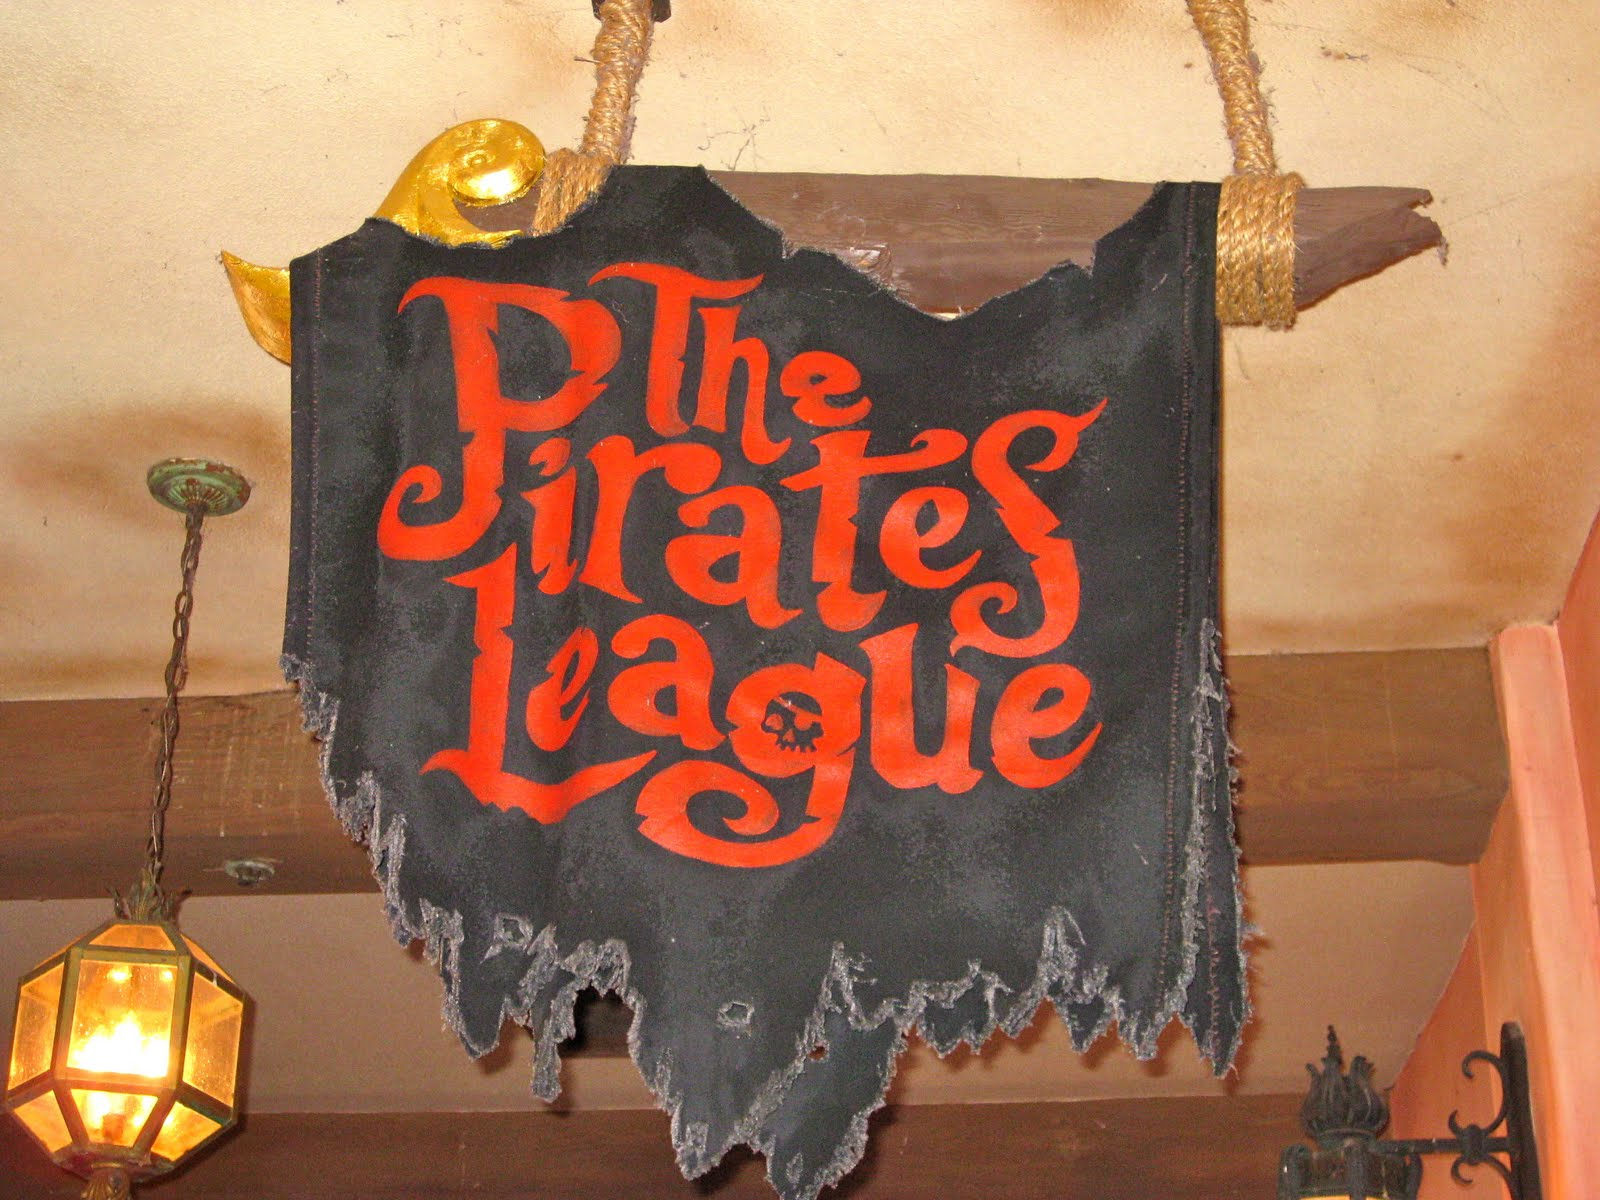 Bibbidi Bobbidi Boutique & Pirates League Tipping Guidelines